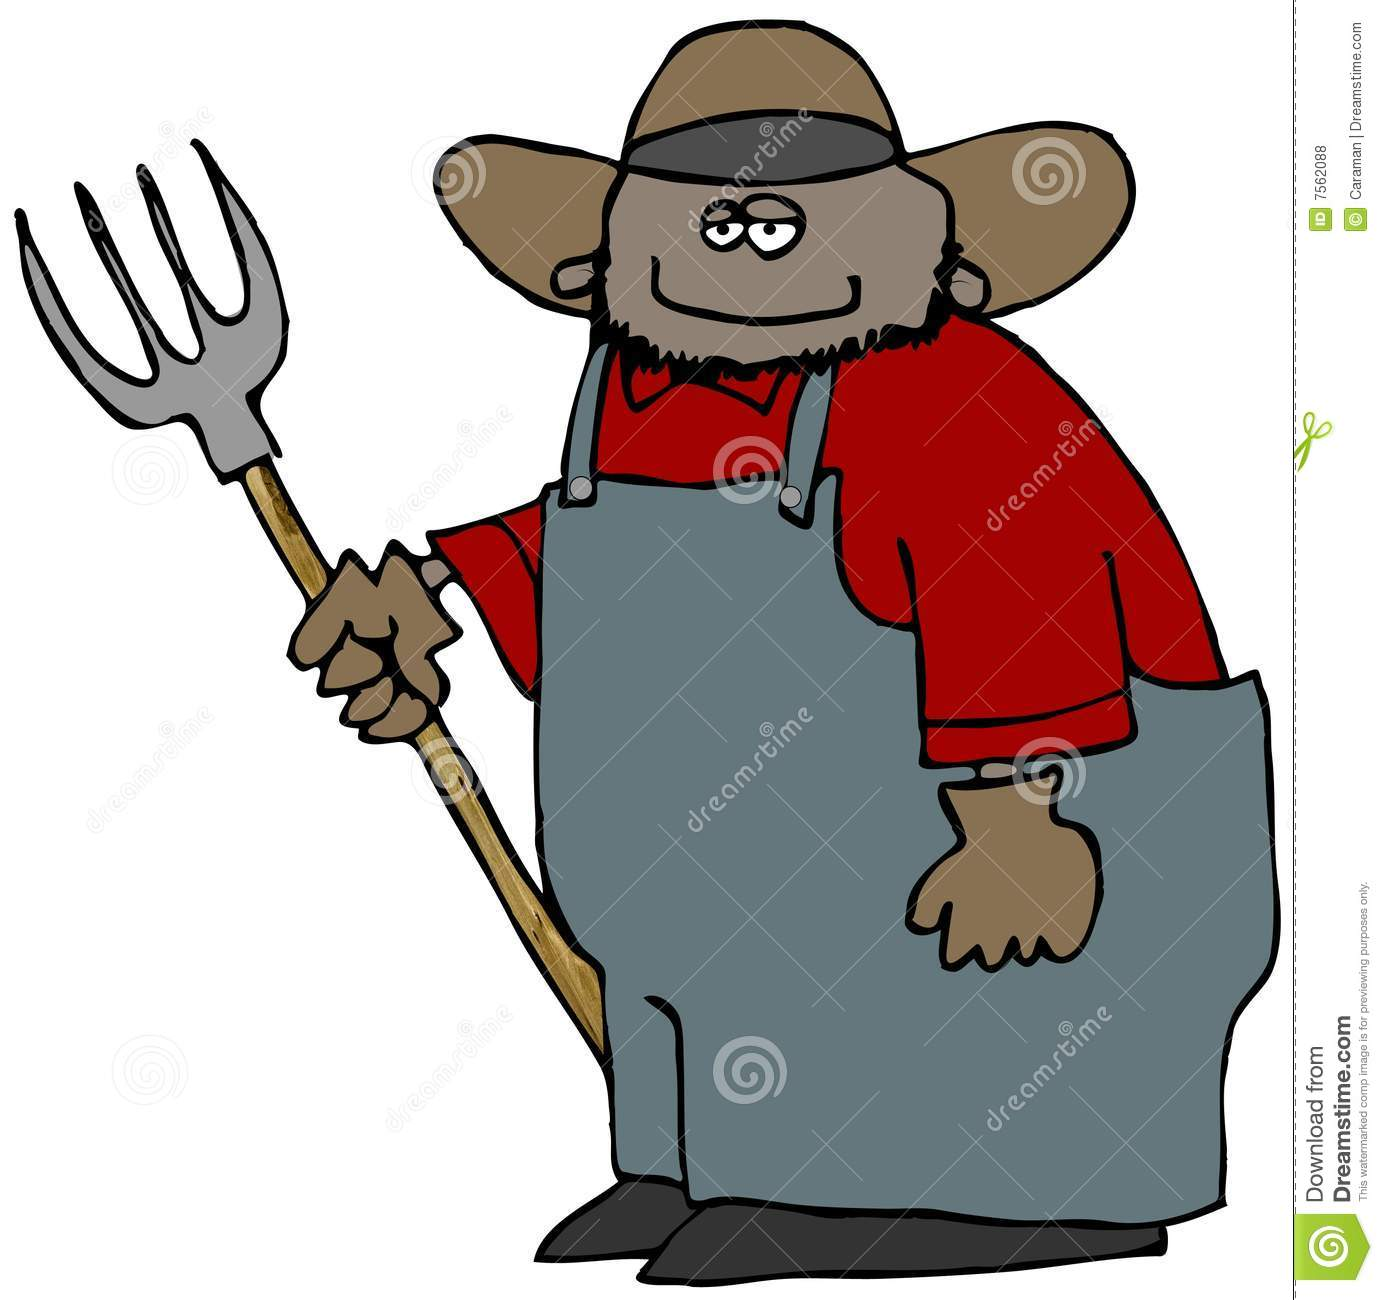 Farmer With A Pitchfork stock illustration. Illustration of male.